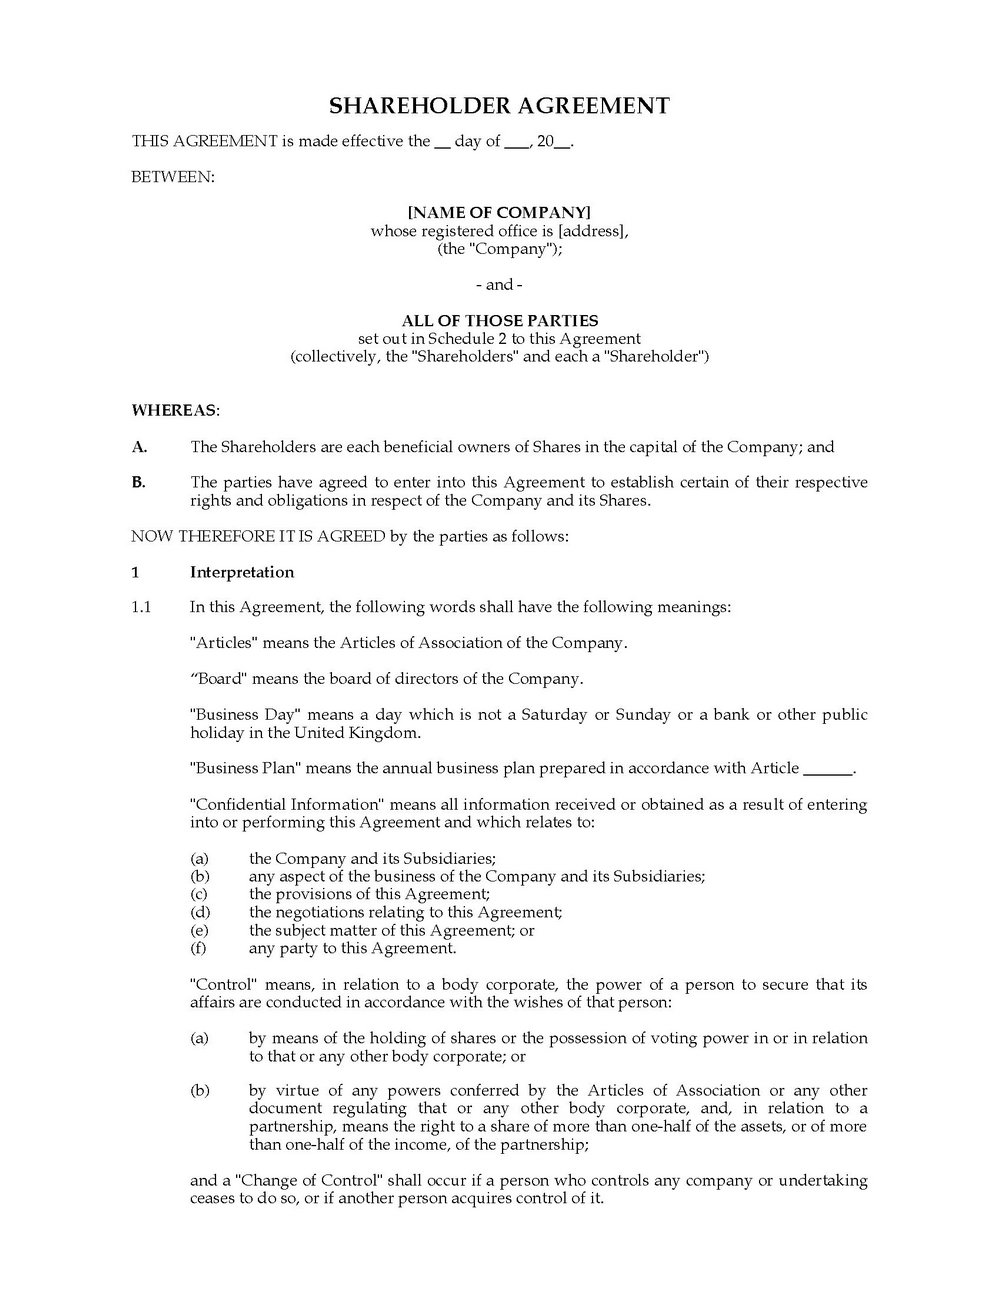 Shareholders Agreement Template South Africa